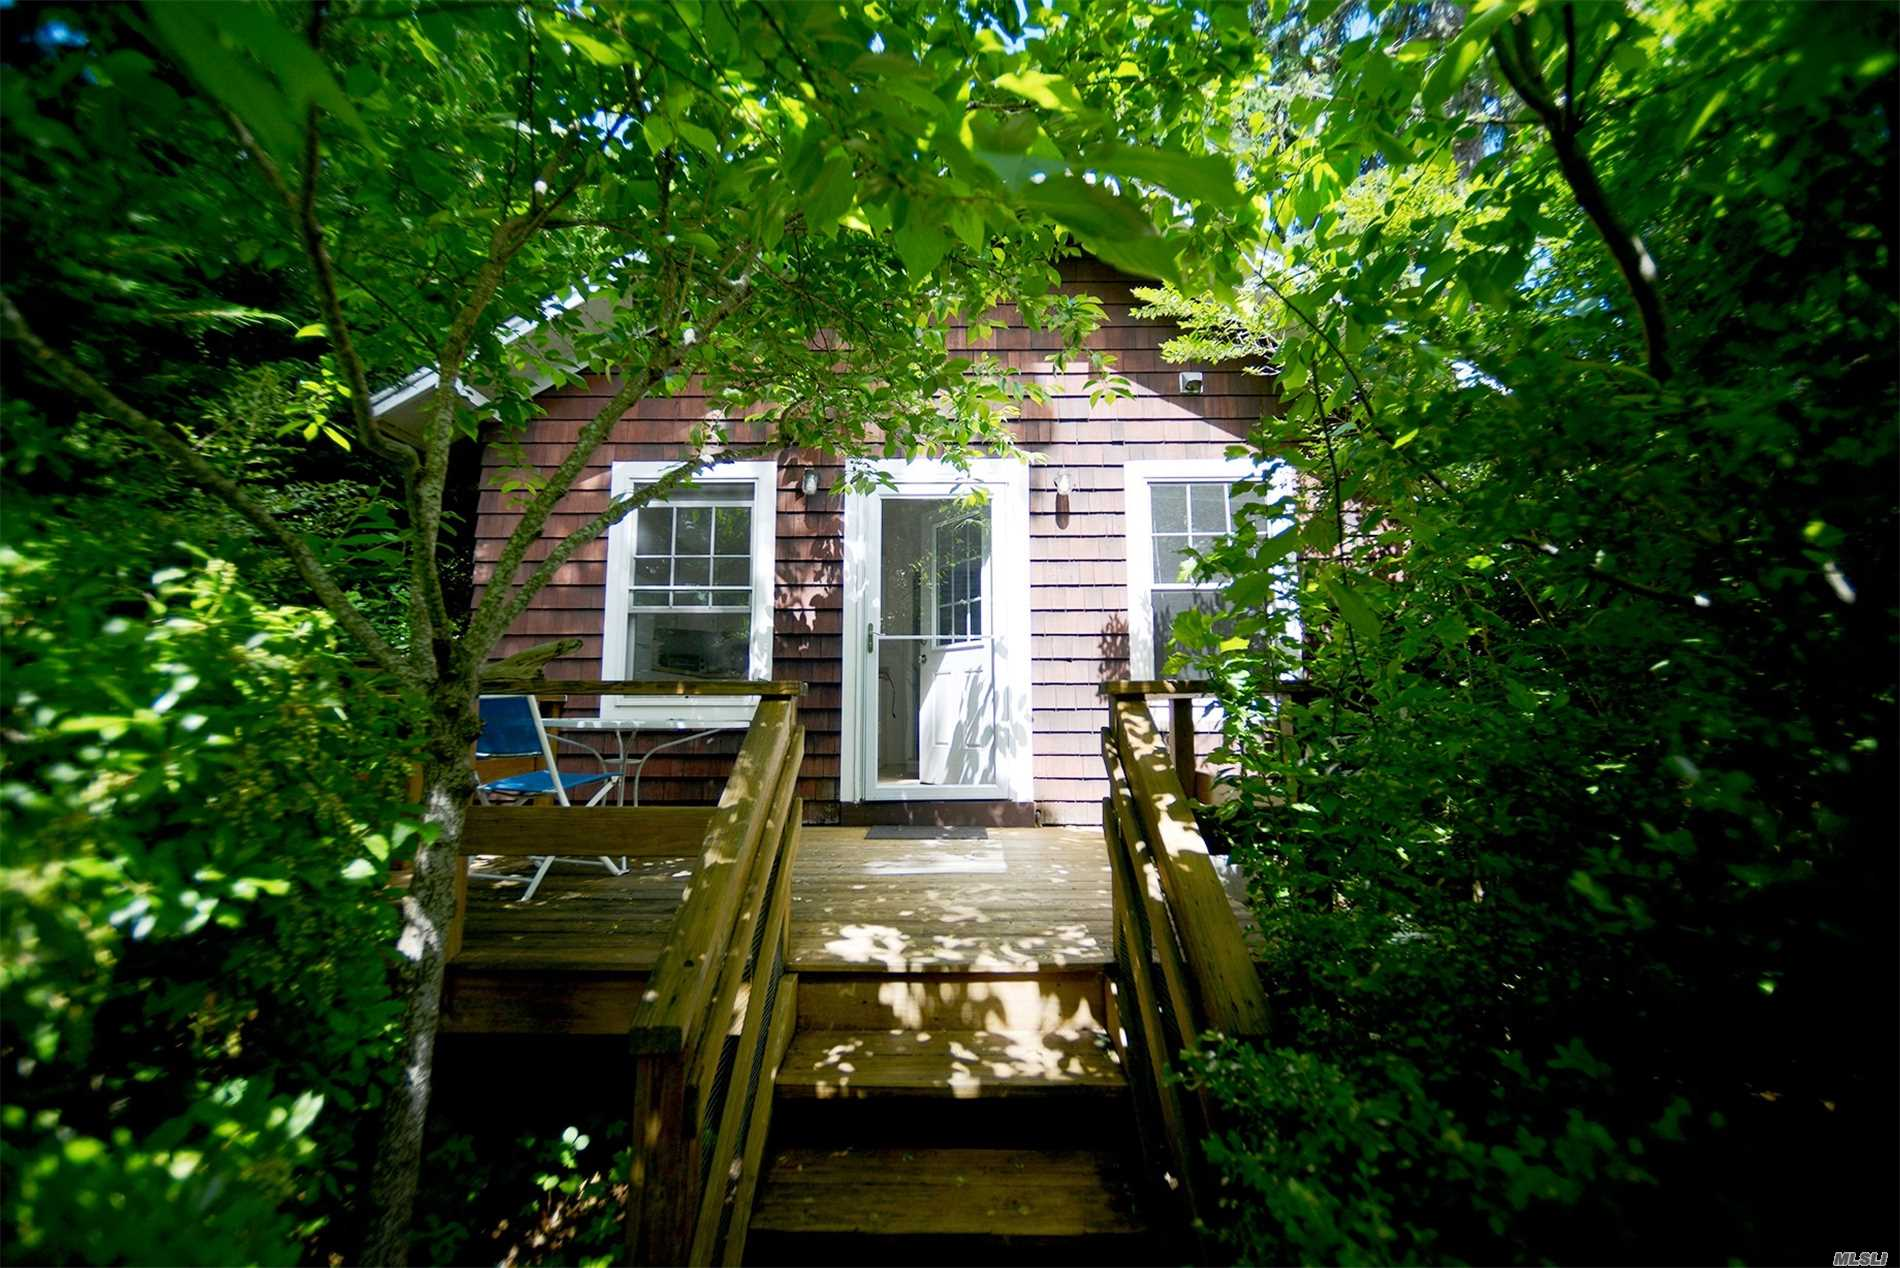 Charming classic vacation cottage - completely renovated and tastefully furnished with eat-in kitchen, bath, living room and 2 bedrooms. A stone's throw from beautiful sandy LI Sound beach. Near vineyards, Love Lane shopping, restaurants, and farm stands. Bike or walk on country roads. Explore the creeks and wetlands of Mattituck Inlet from private dock in your canoe or kayak. $1400 per week with minimum two week stay or $5000 for August 1 - Labor Day.